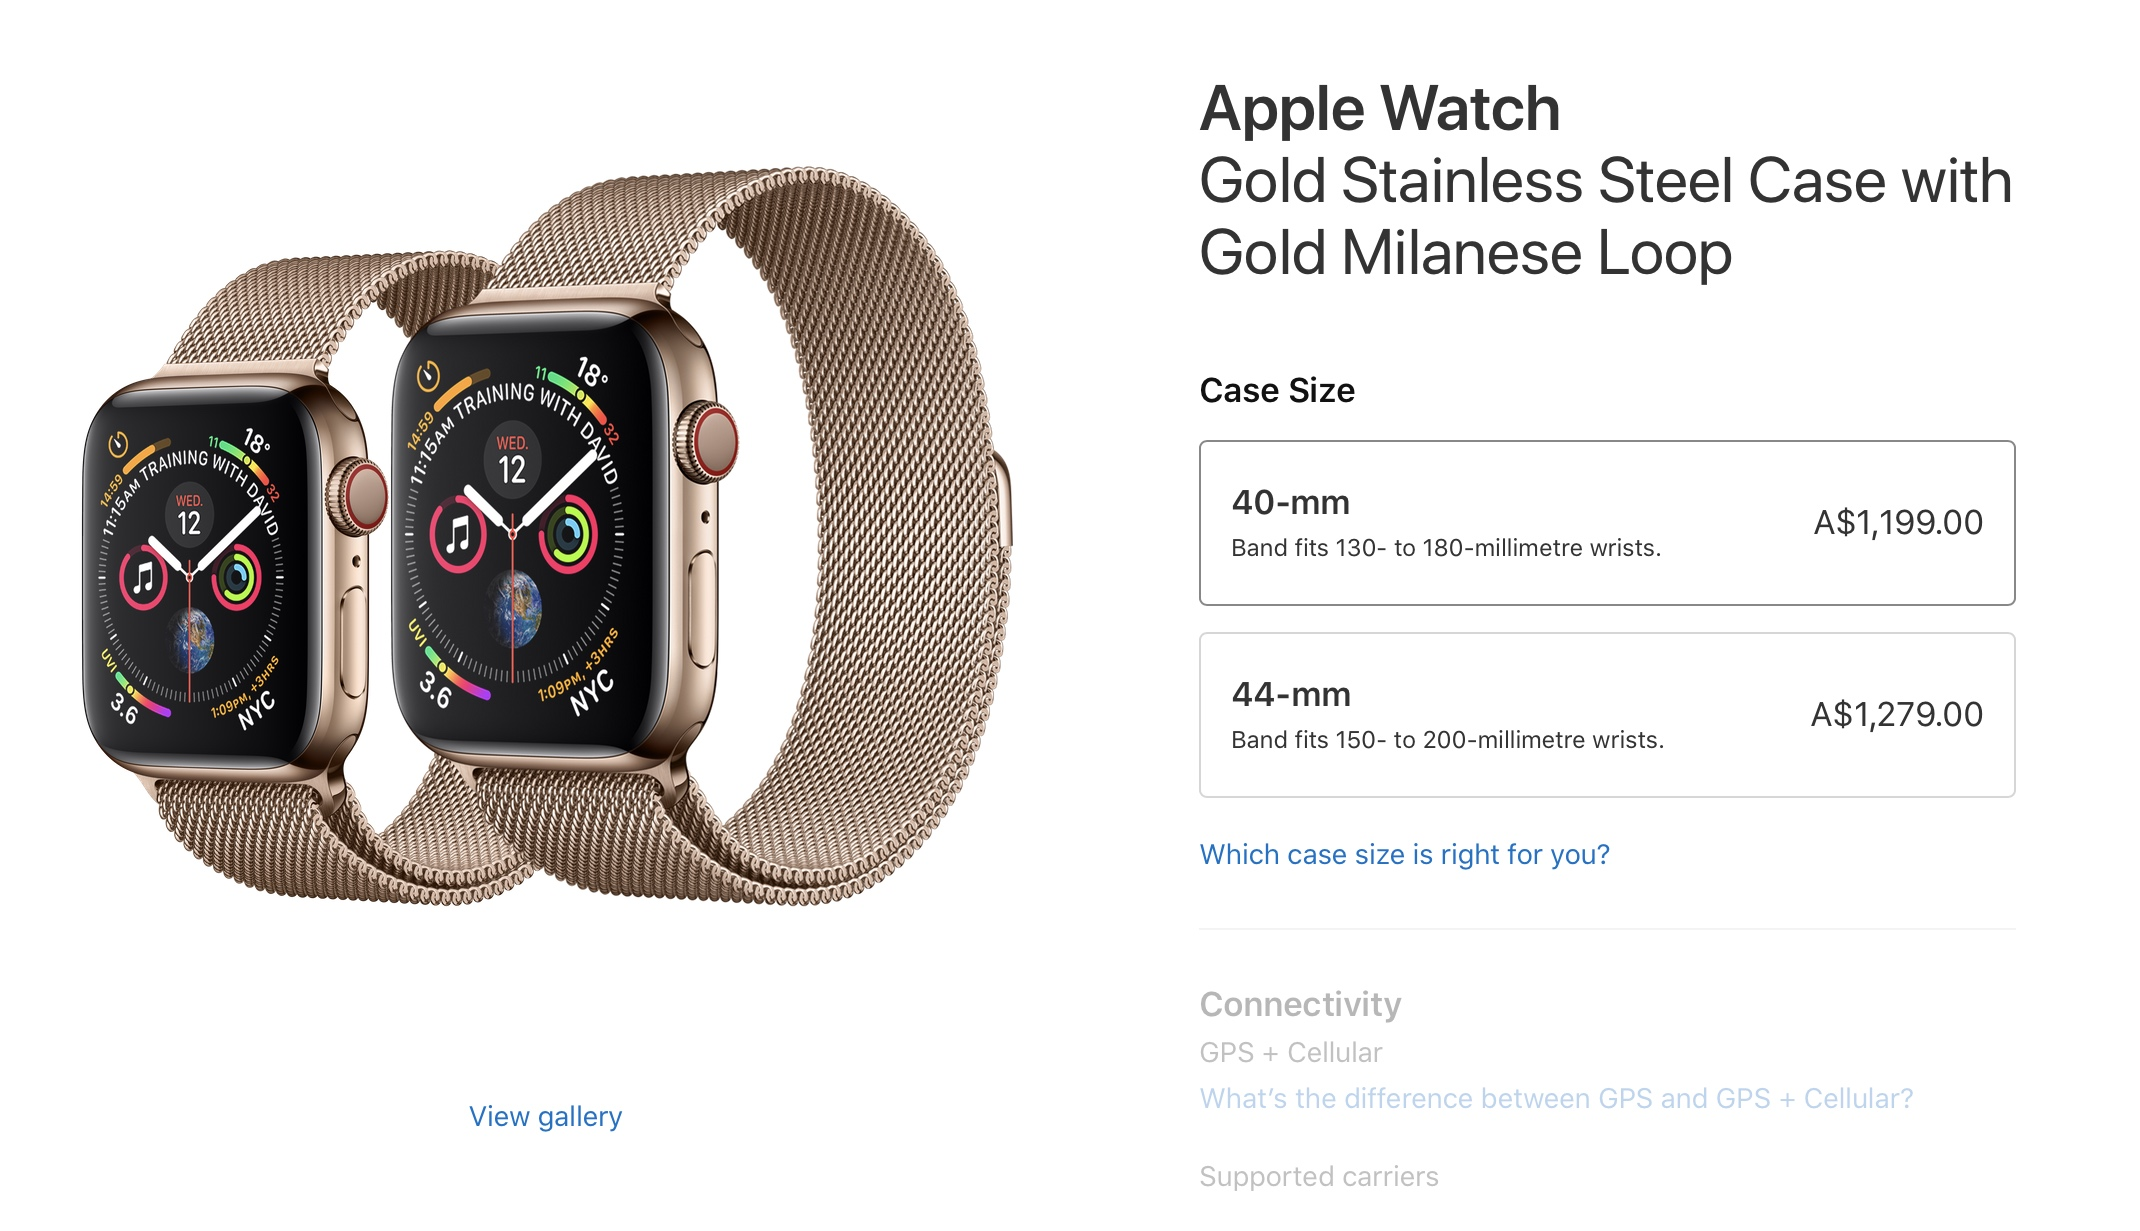 New Zealand telco Spark announced plans recently to adopt eSIMS paving the way for these Apple Watch variants to finally be available in NZ